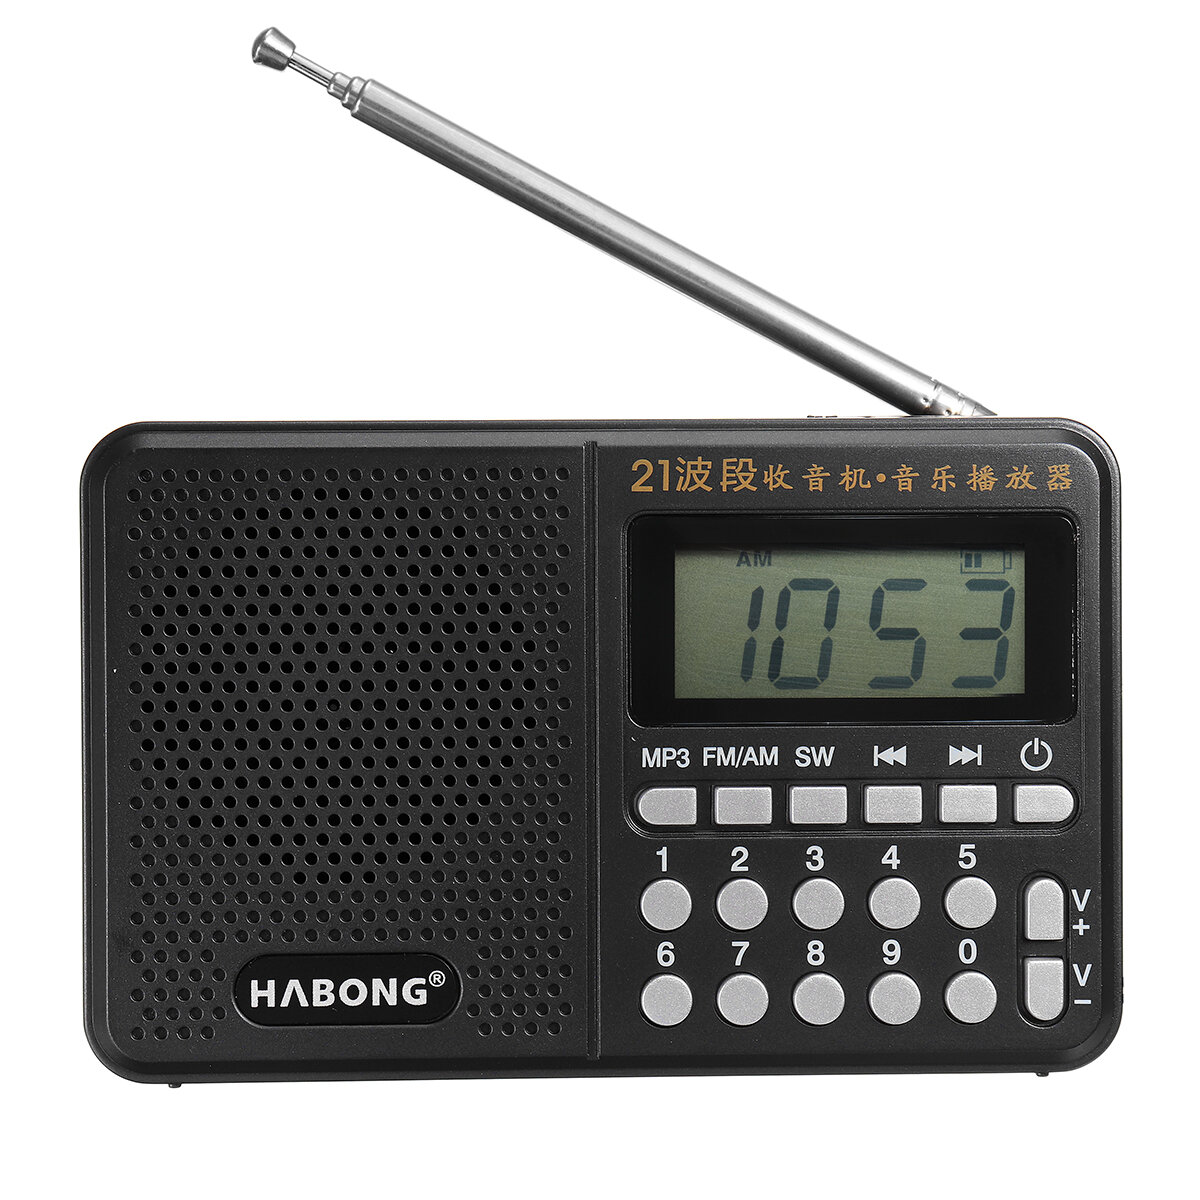 Portable Digital FM AM SW Radio 21 Band Charge Receiver Speaker MP3 Player